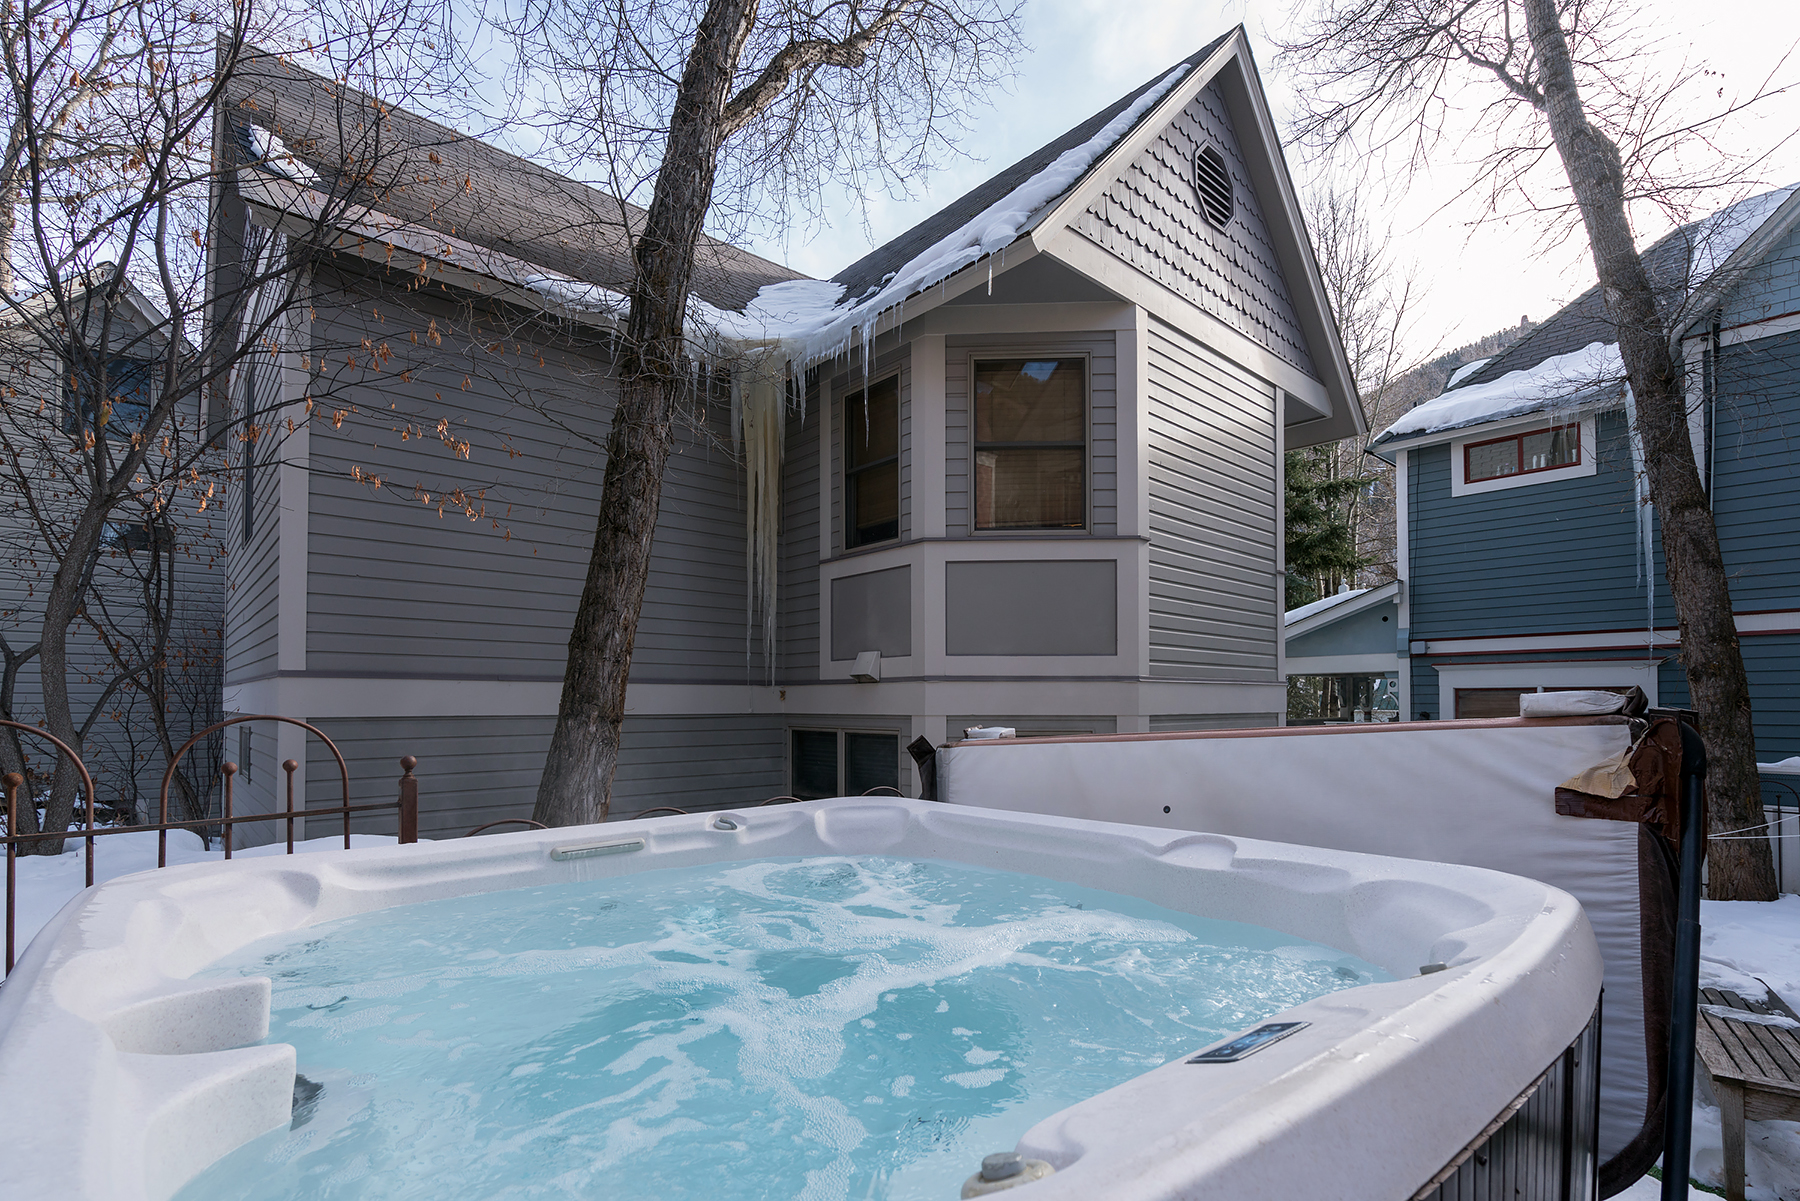 Single Family Home for Sale at 314 N. Oak Street Telluride, Colorado 81435 United States